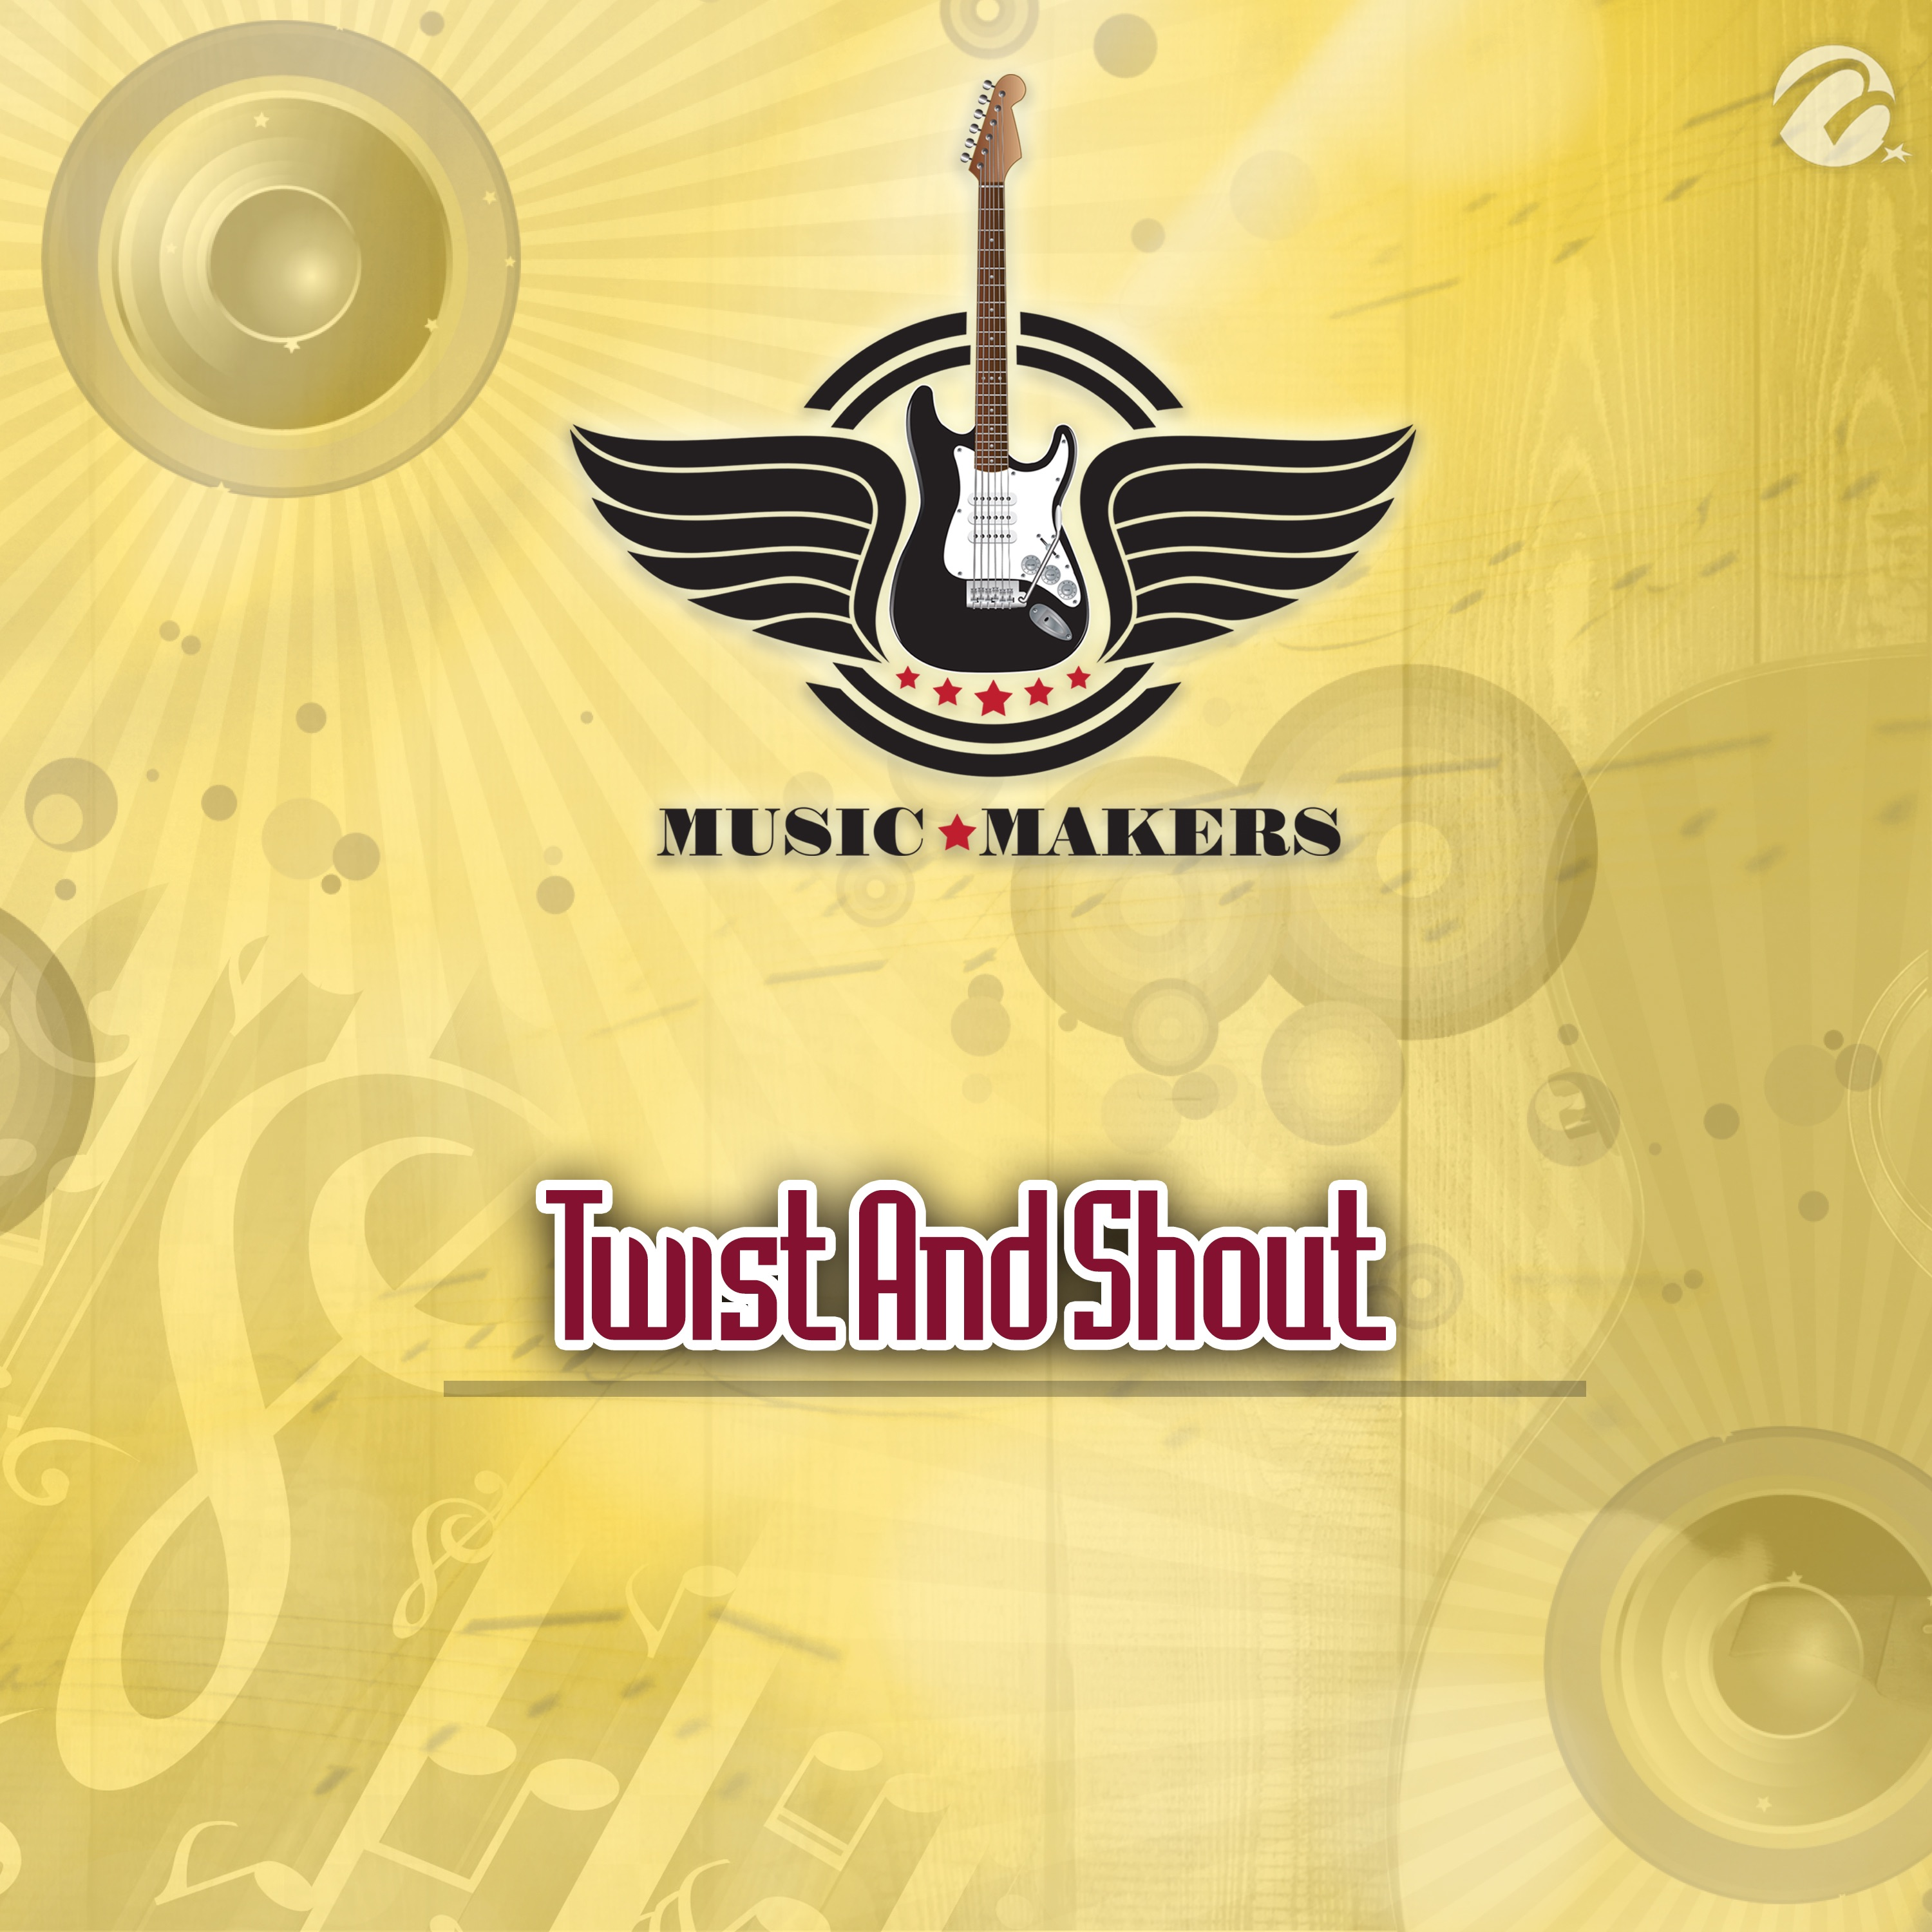 Twist and Shout - Single